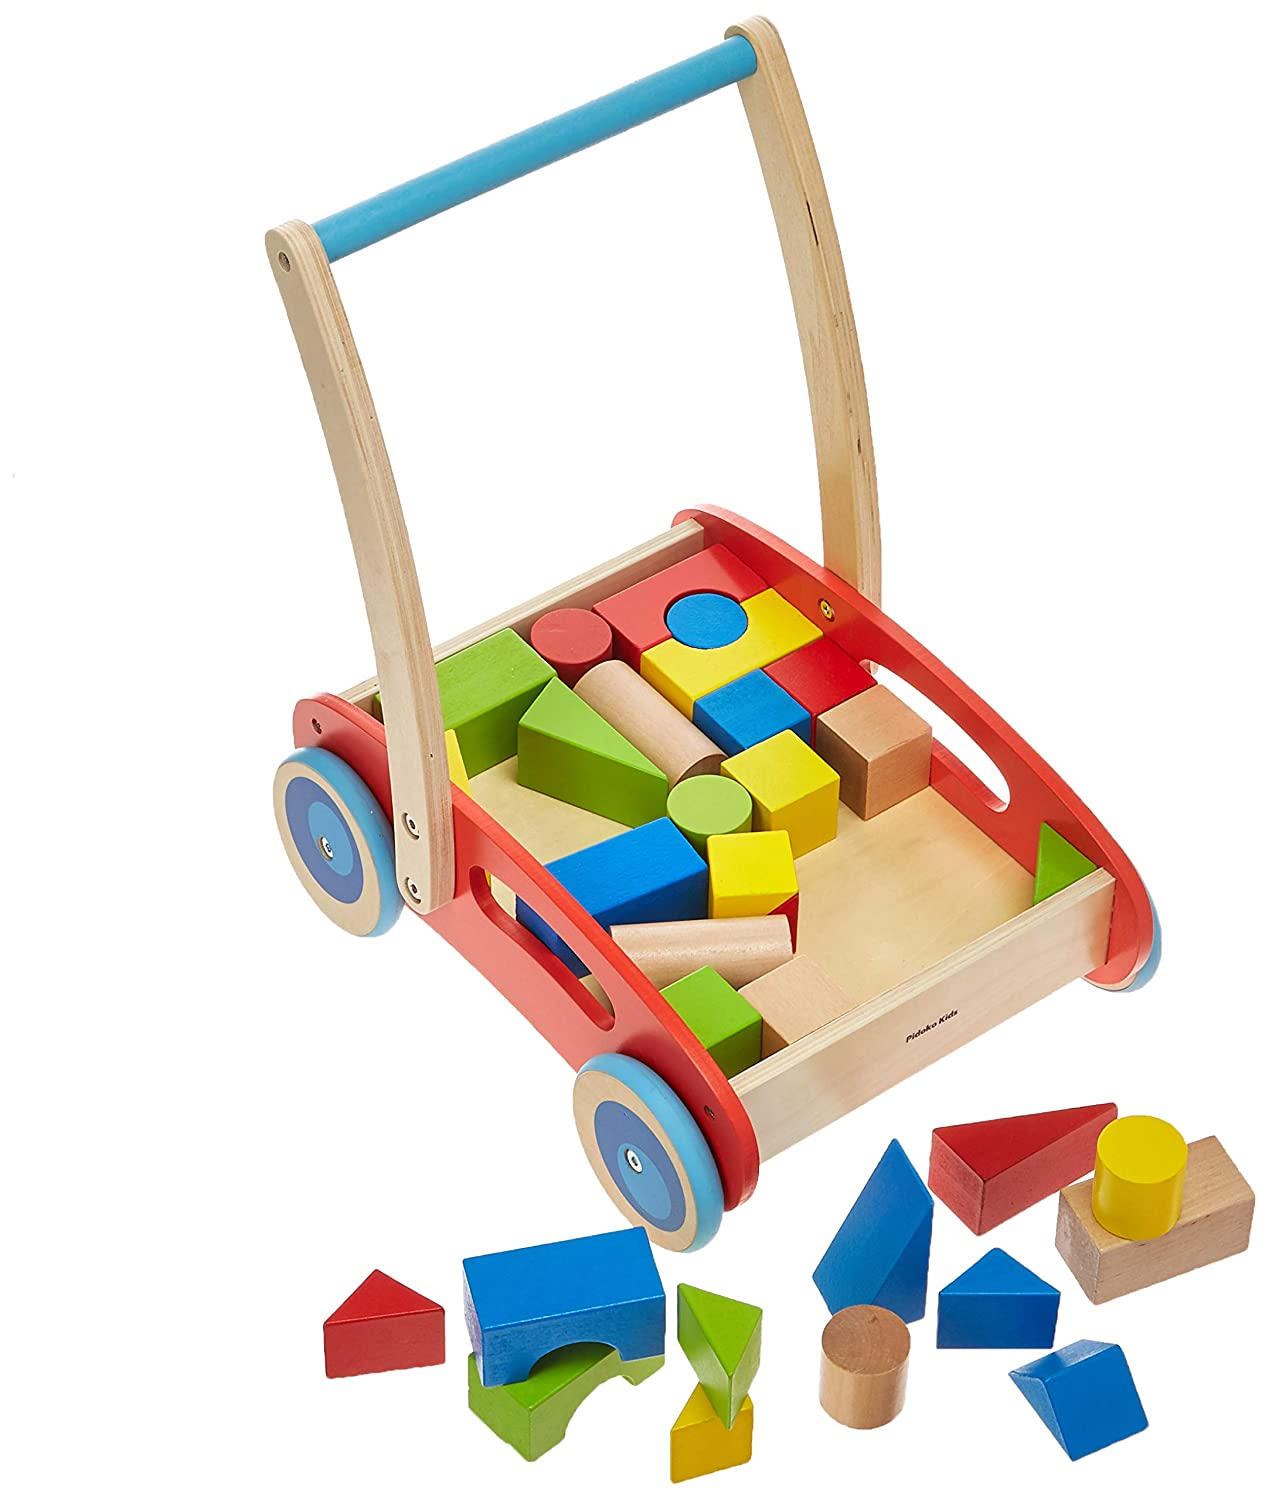 Pidoko Kids Baby Walker with Blocks Activity Block and Roll Cart 33 Pcs Toddler Learning Toys for 1 Year Old Wooden Push and Pull Toy Red